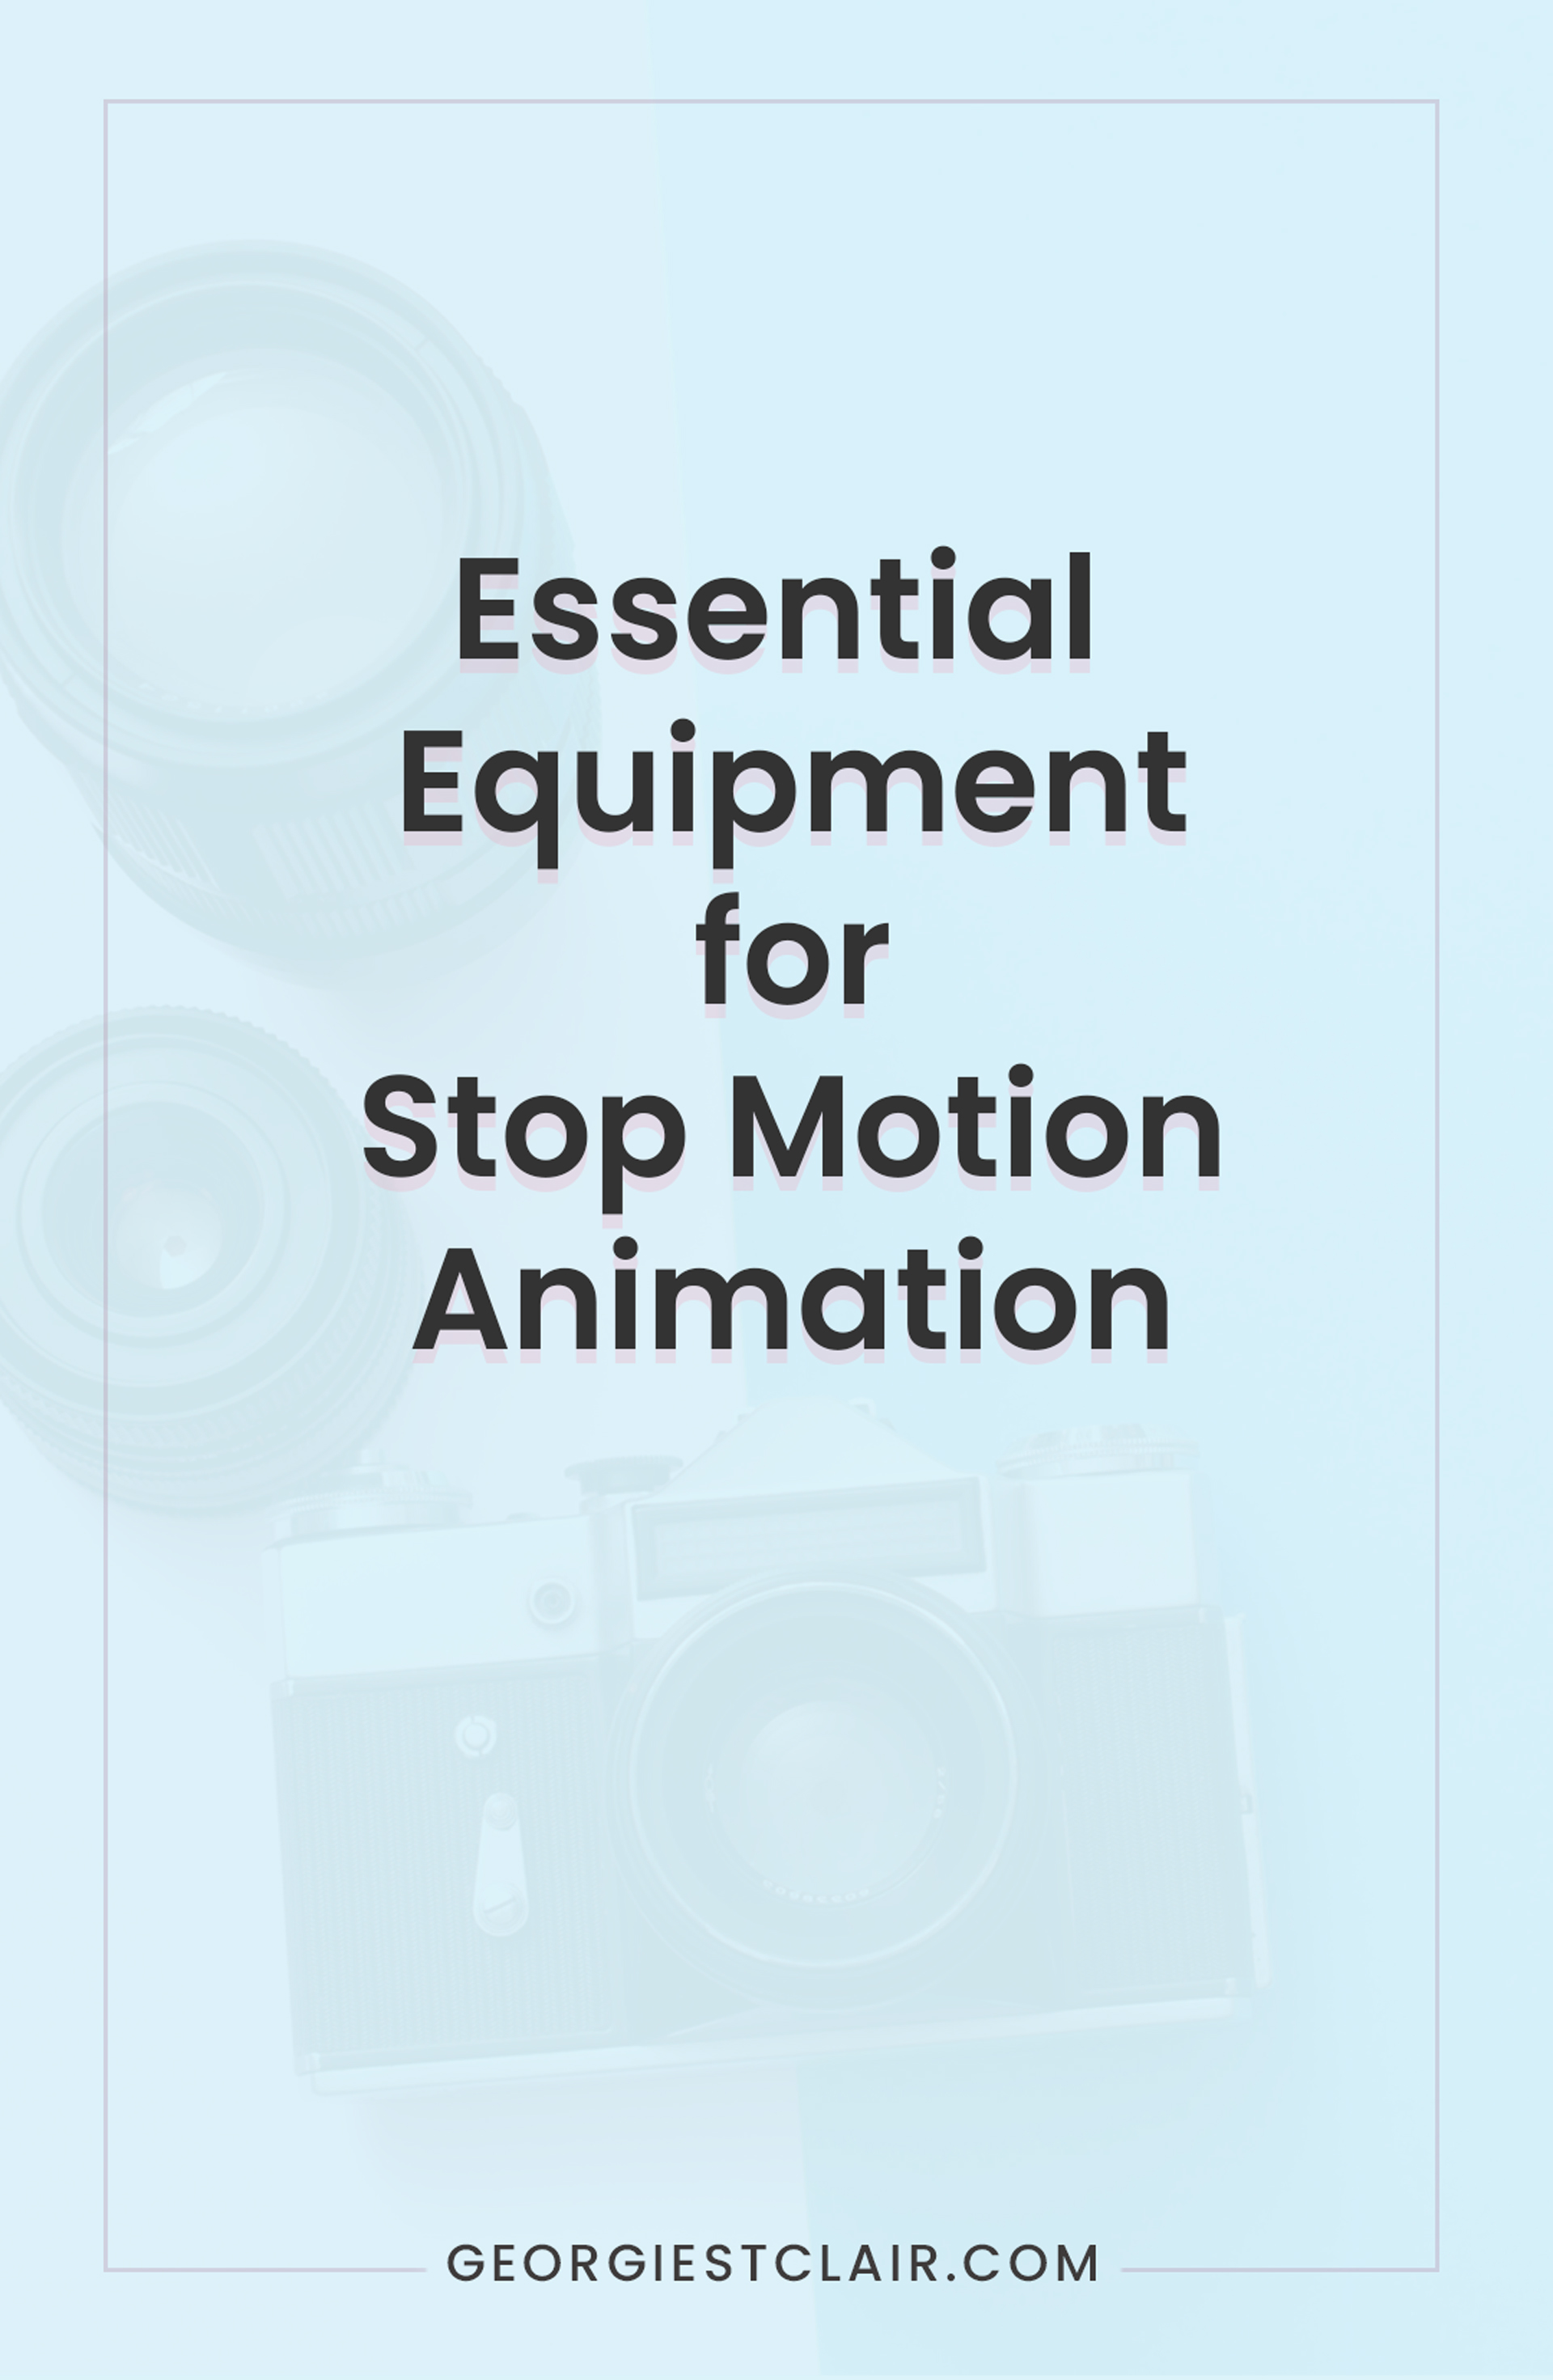 Get Started with Stop Motion Animation. Today we look at essential equipment | Georgie St Clair